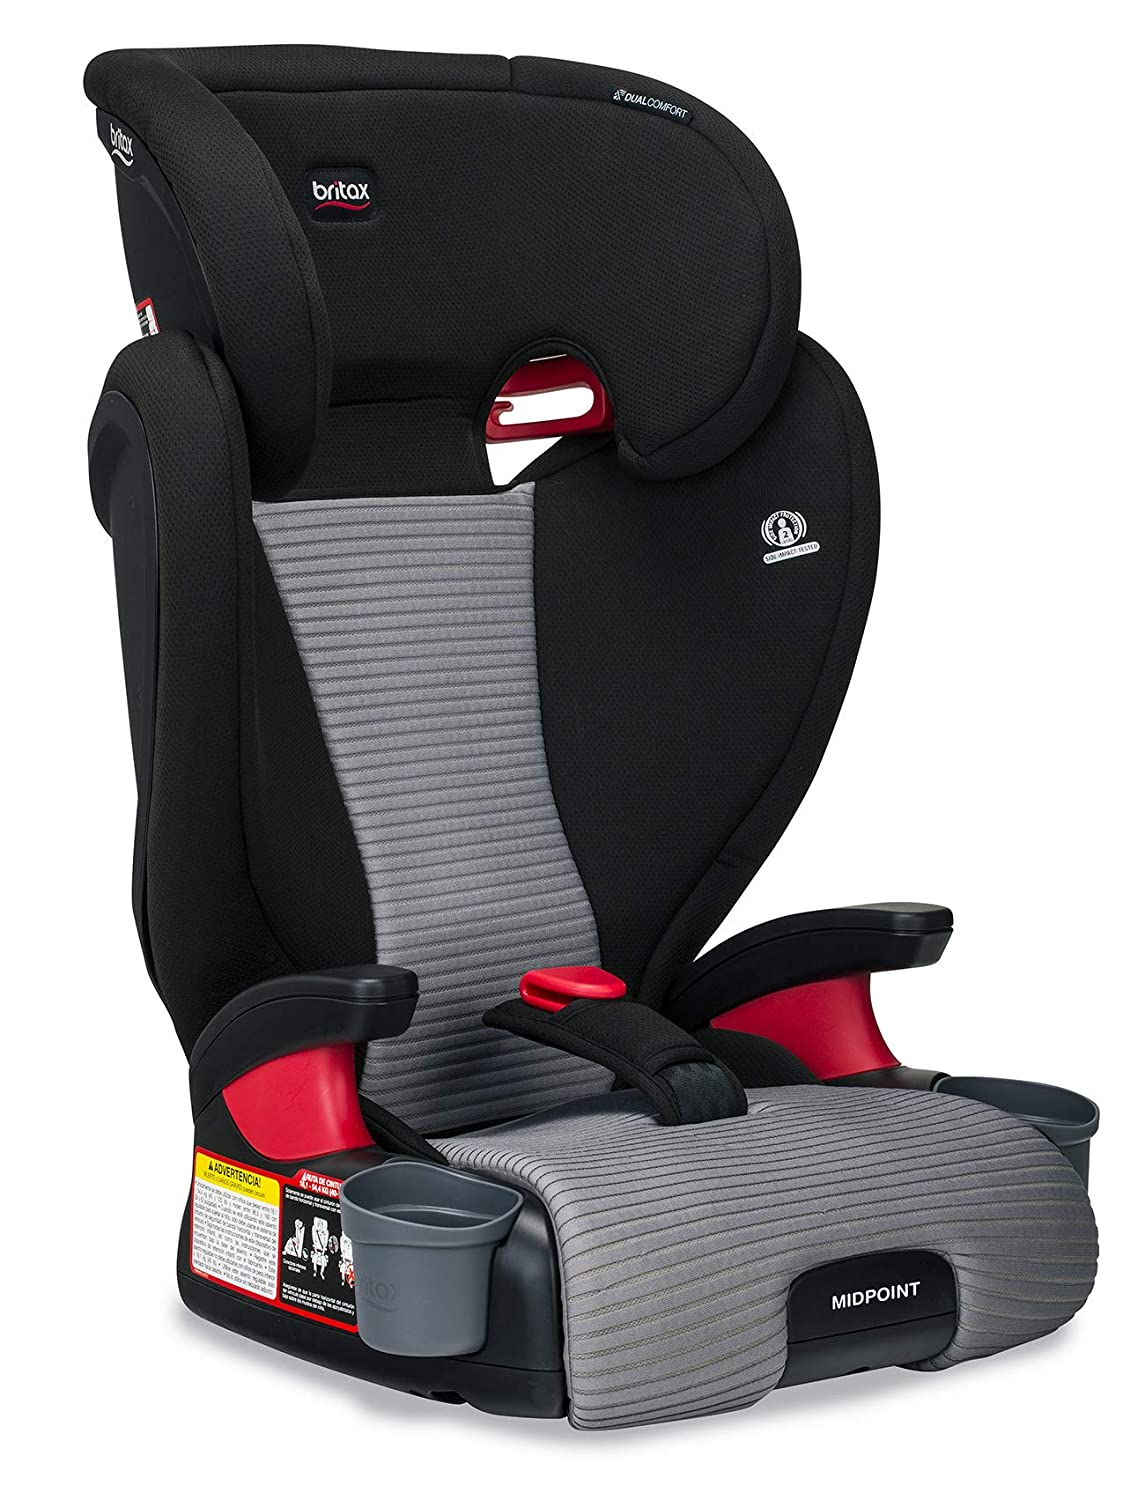 Britax Midpoint Belt-Positioning Booster Seat - 2 Layer Impact Protection - 40 zu 120 Pounds - Dualcomfort Moisture Wicking Fabric, Gray